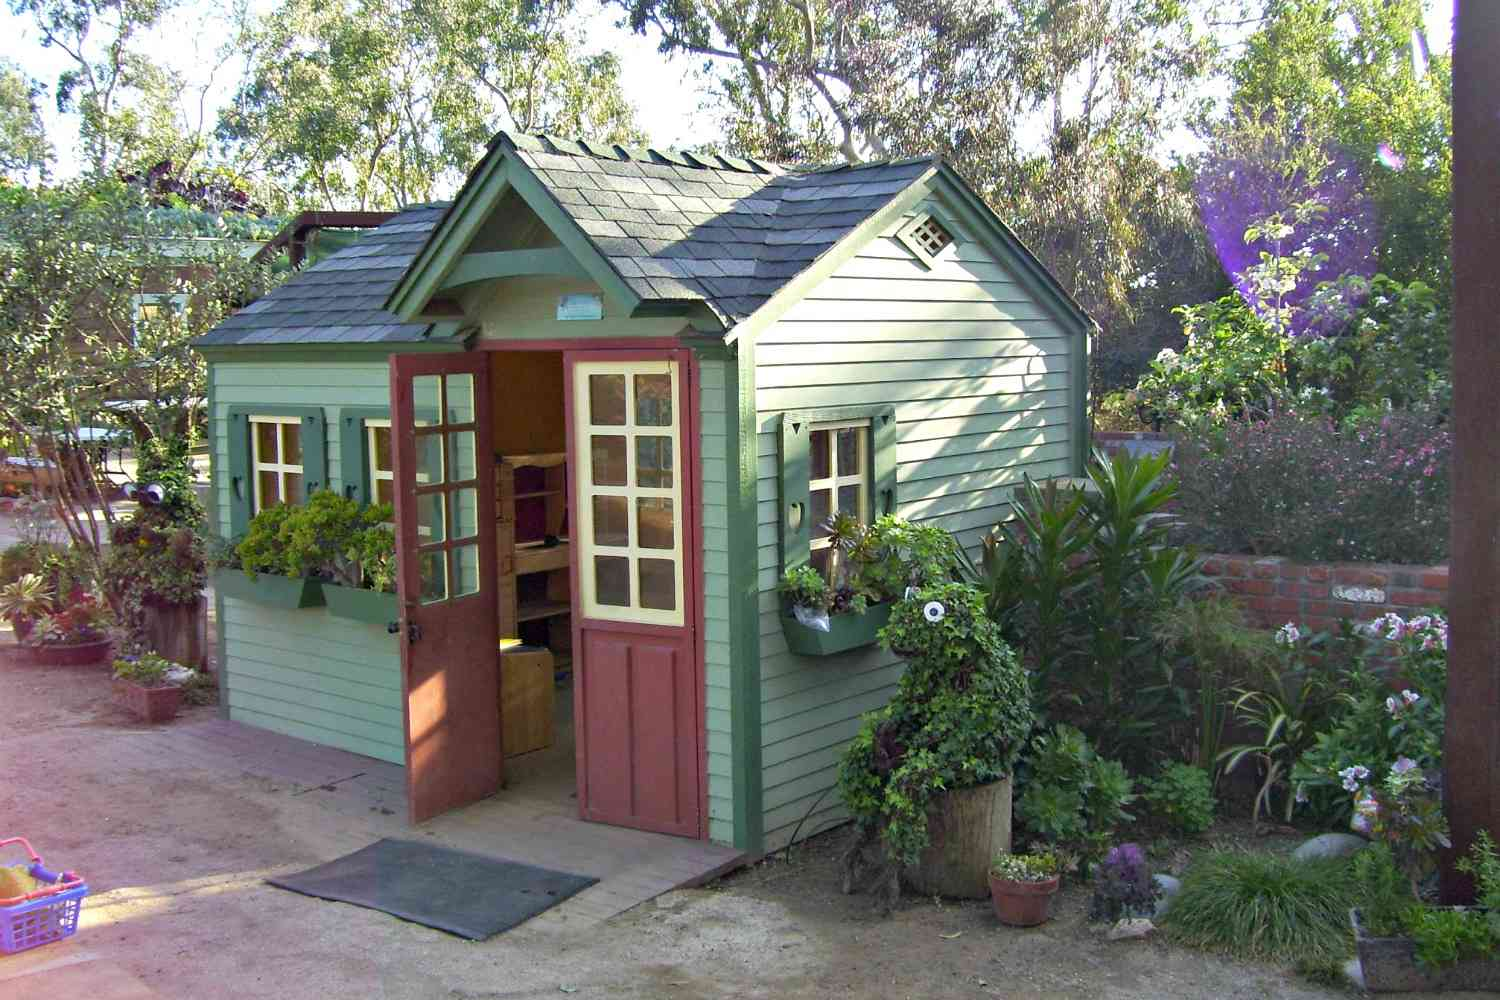 Shed playhouse